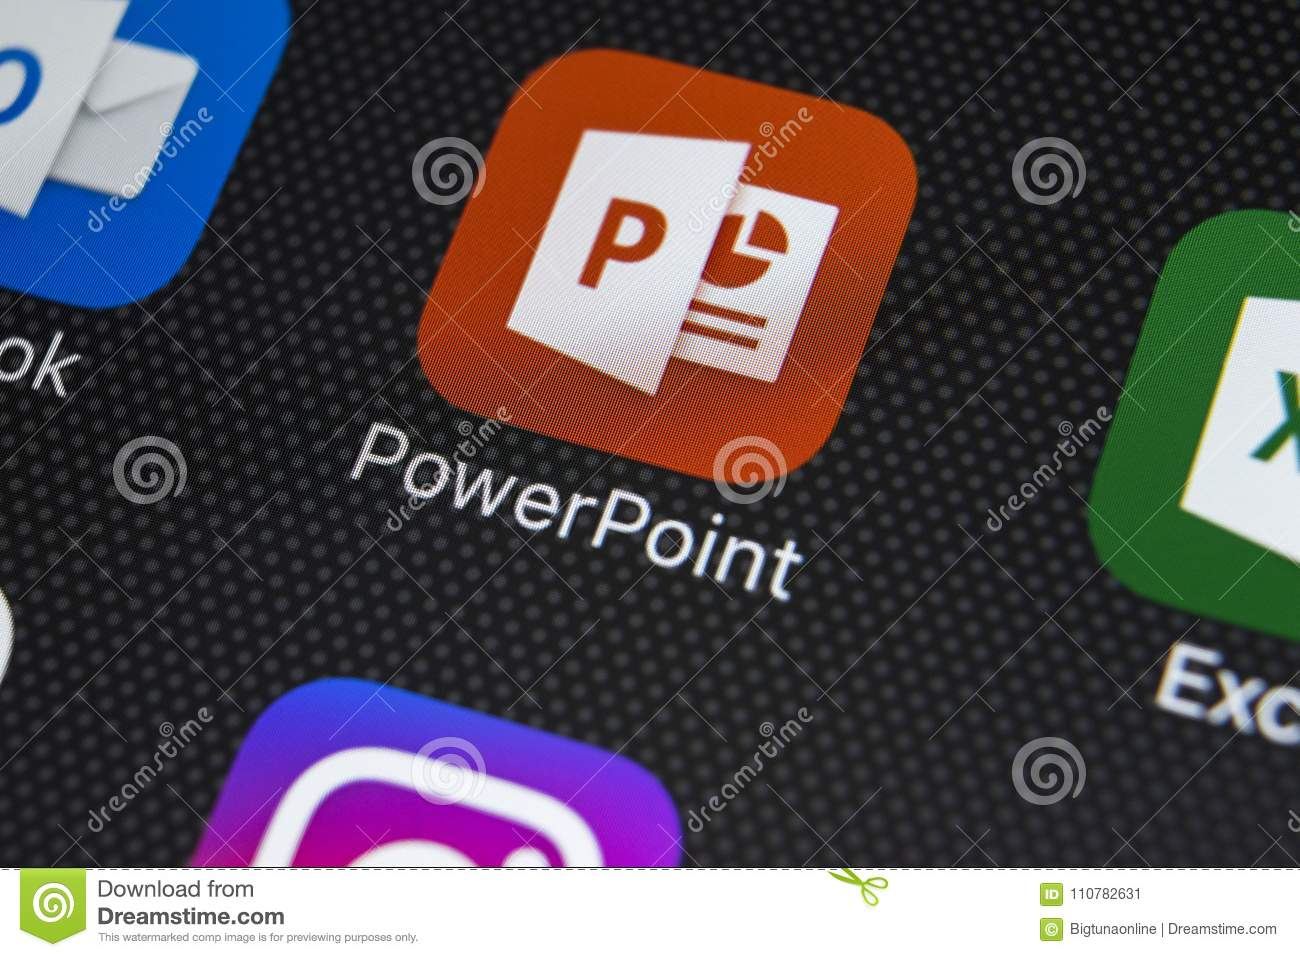 microsoft powerpoint application icon on apple iphone x screen close